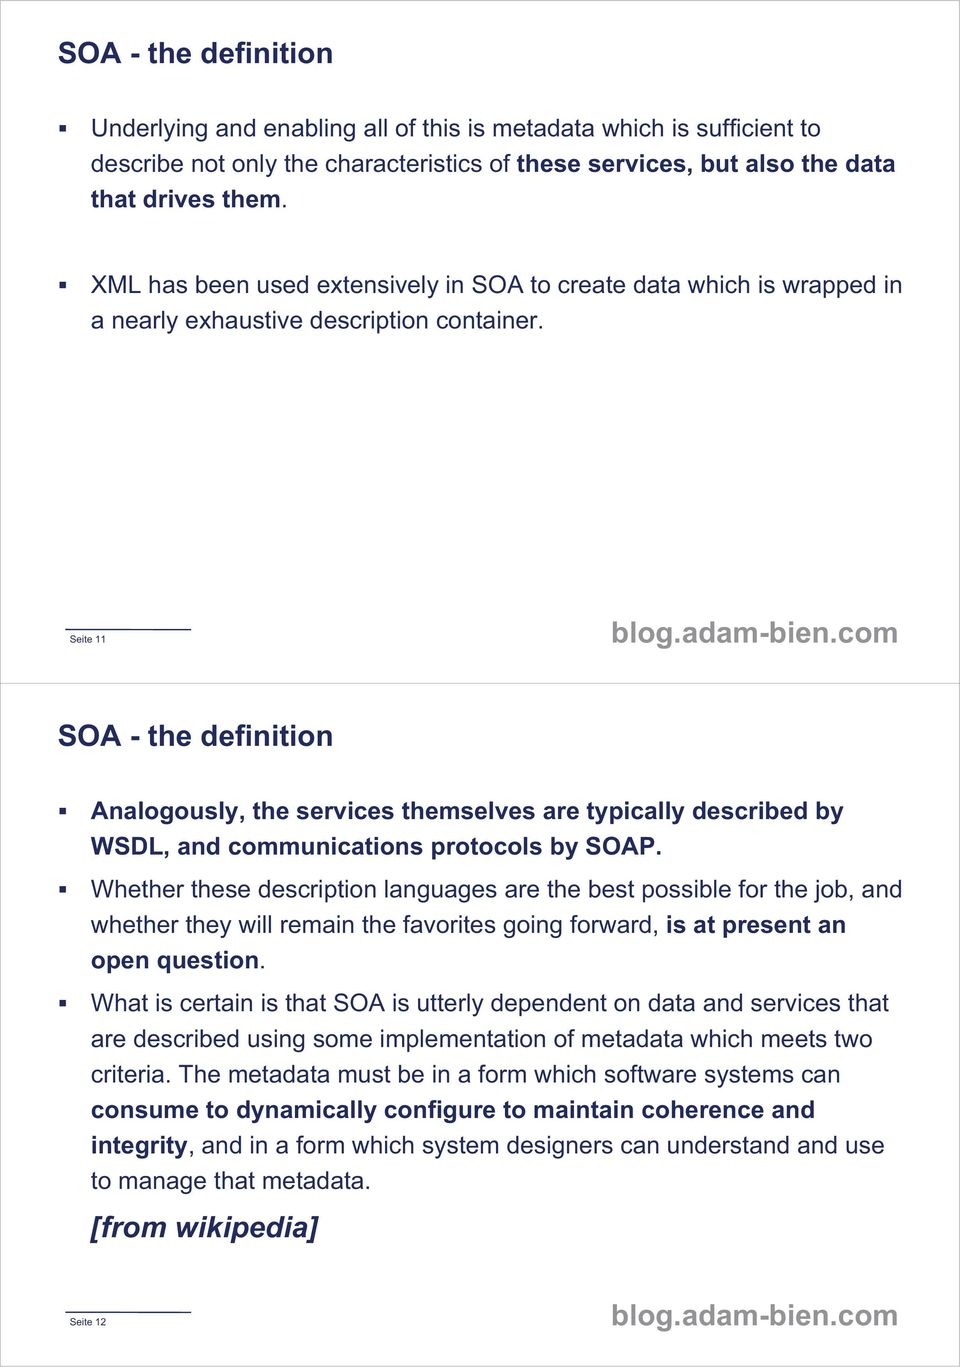 Seite 11 SOA - the definition Analogously, the services themselves are typically described by WSDL, and communications protocols by SOAP.